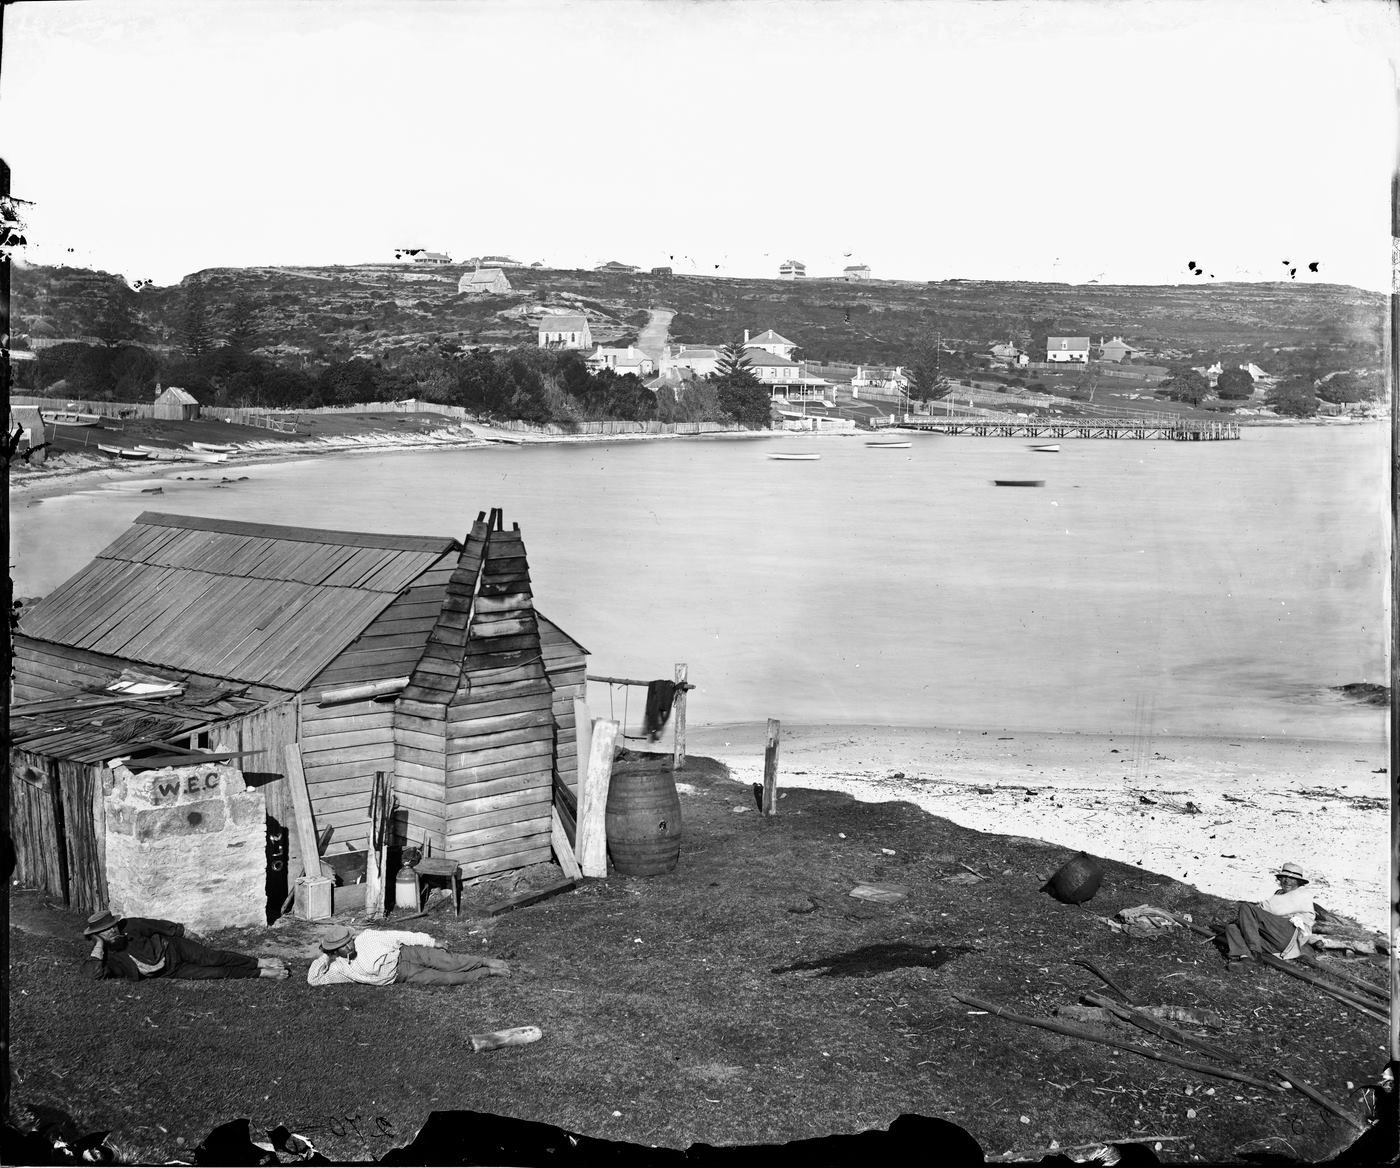 Slab hut on Village Point with Watsons Bay in the background